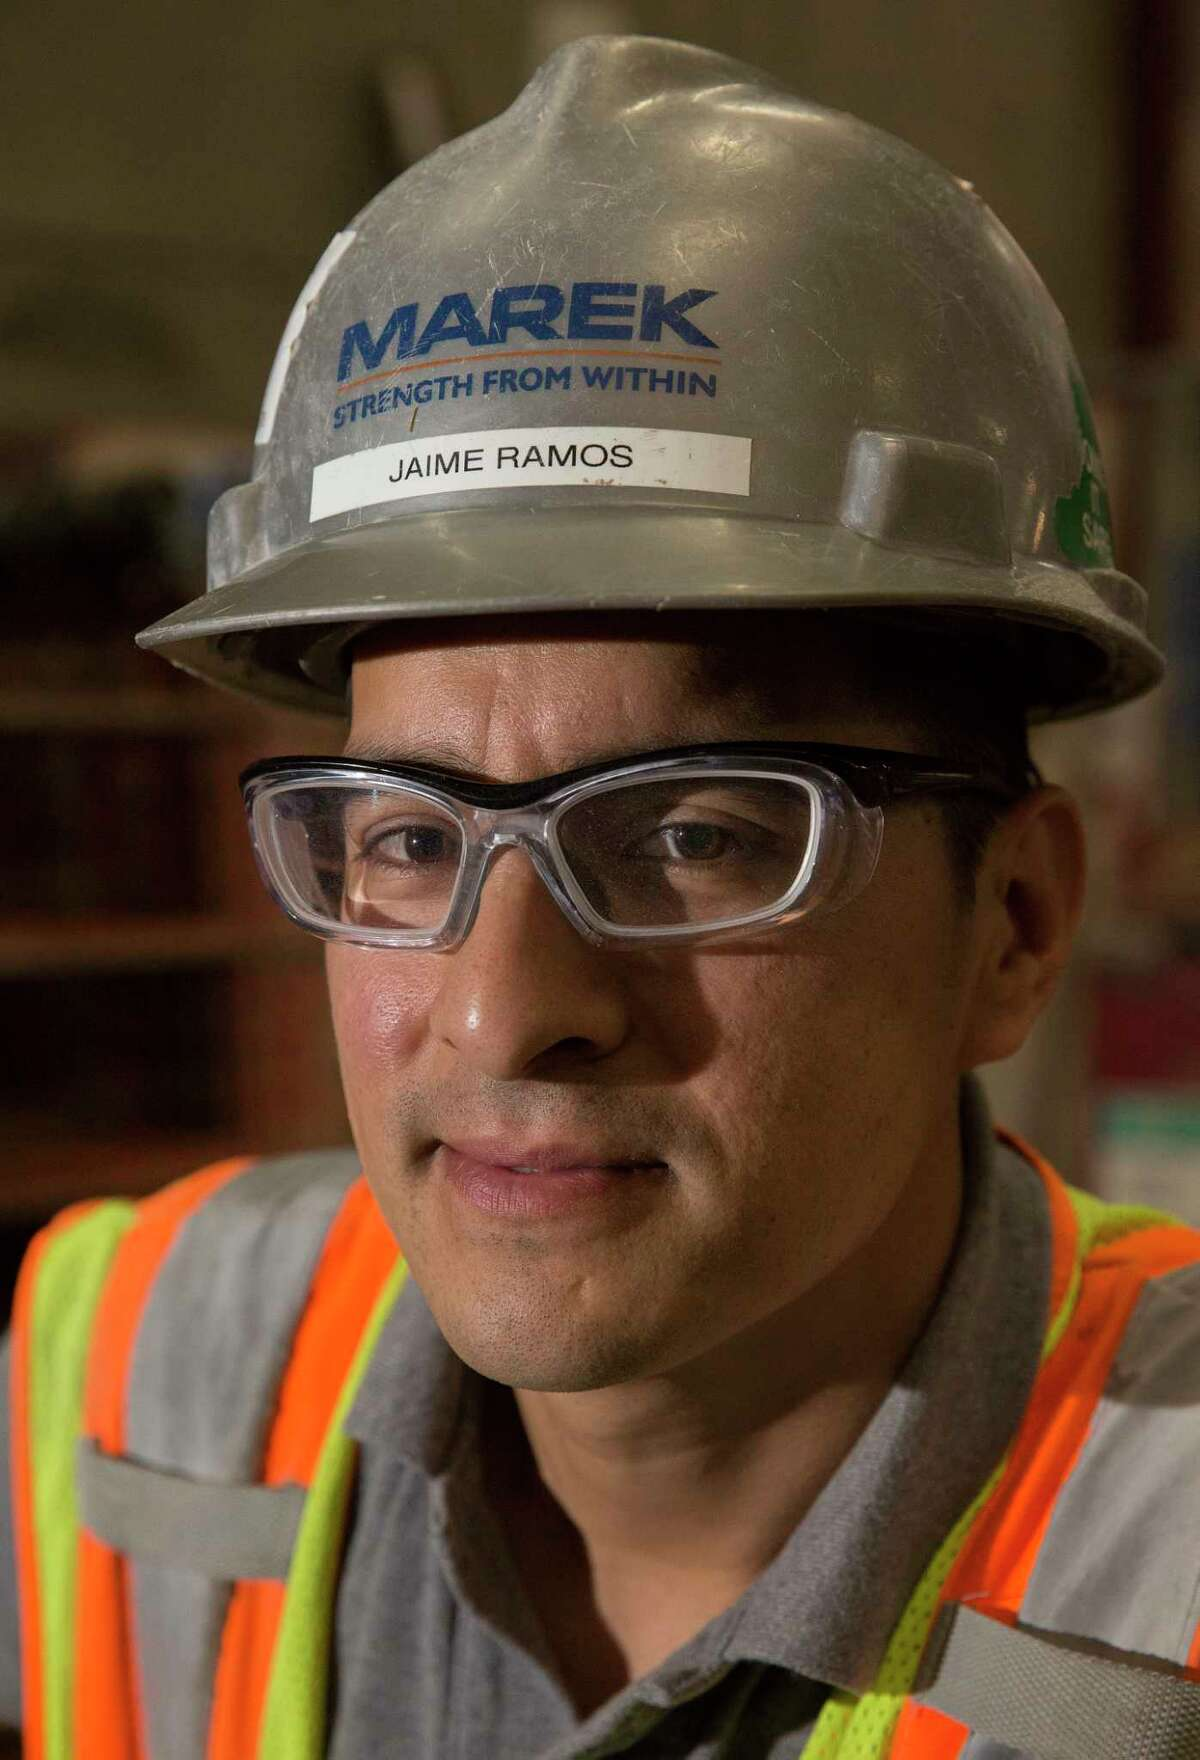 Jaime Ramos, a 30-year-old construction foreman, poses for a portrait at the Marek Brothers Systems Inc. warehouse Friday, May 5, 2017, in Houston. Marek has established it's own training programs for craft workers, and Ramos has completed the program. ( Yi-Chin Lee / Houston Chronicle )